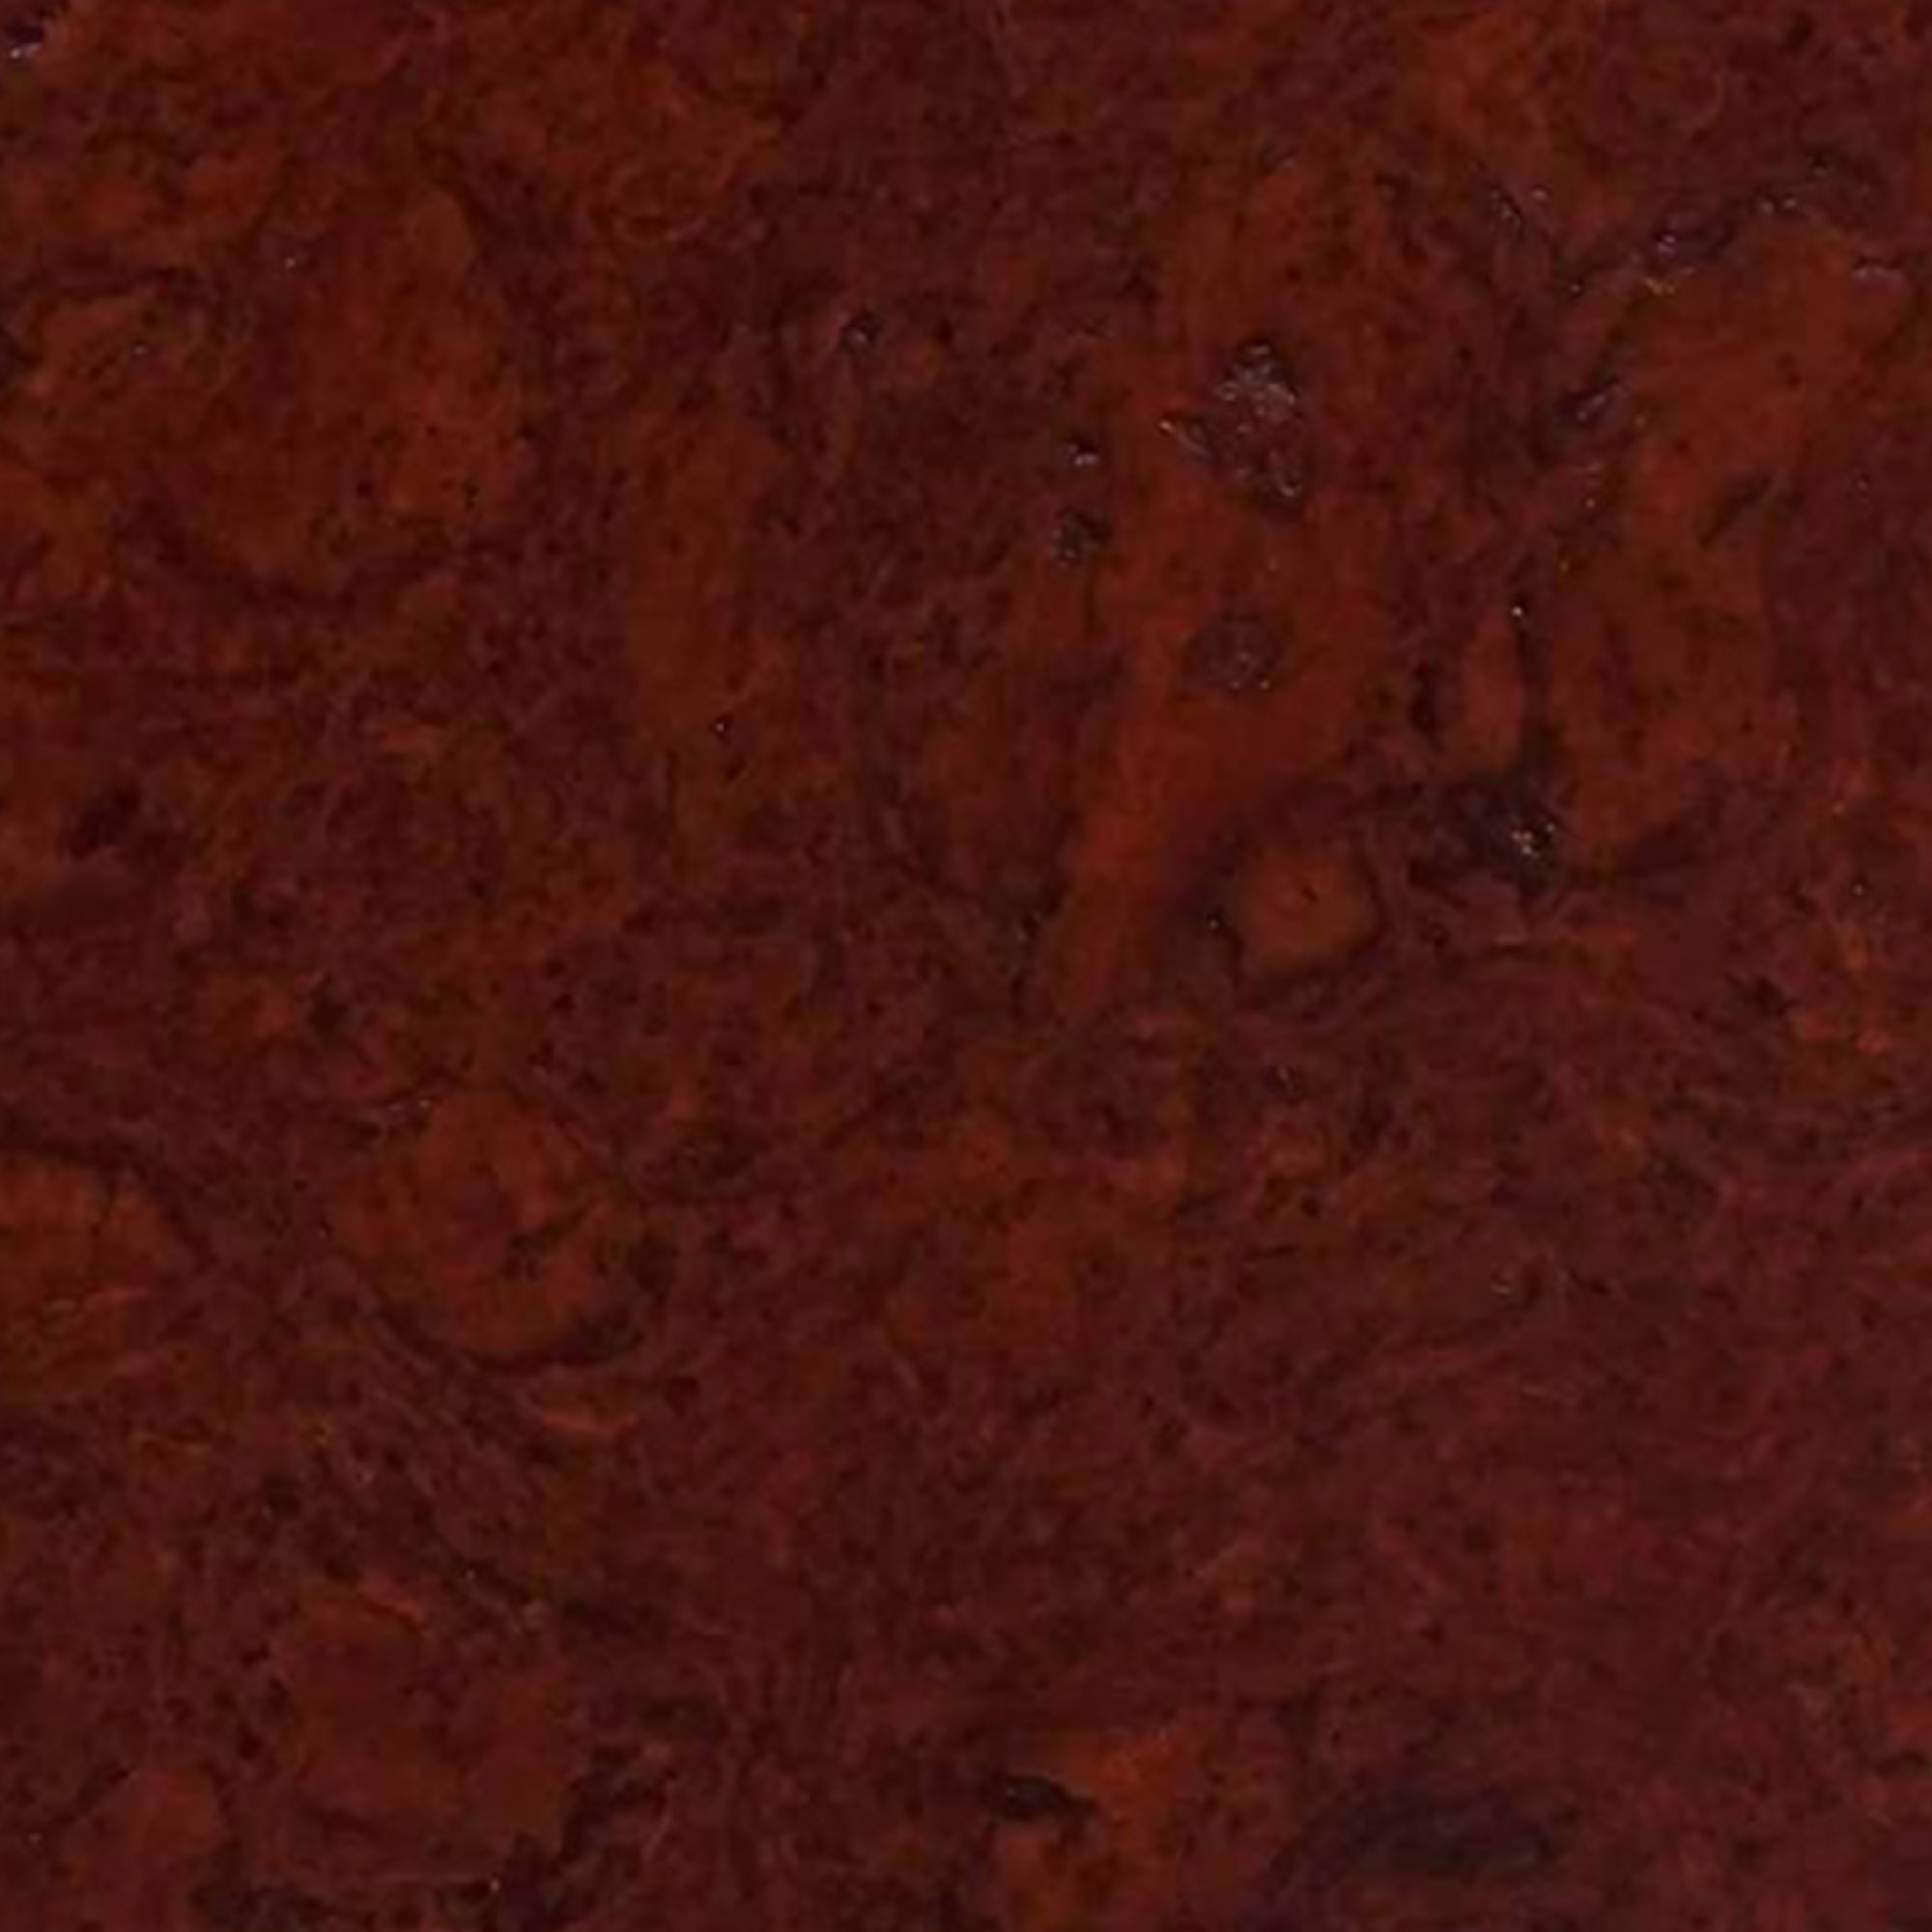 Globus Cork Glue Down Tiles Nugget Texture 12 x 12 RedMahogany